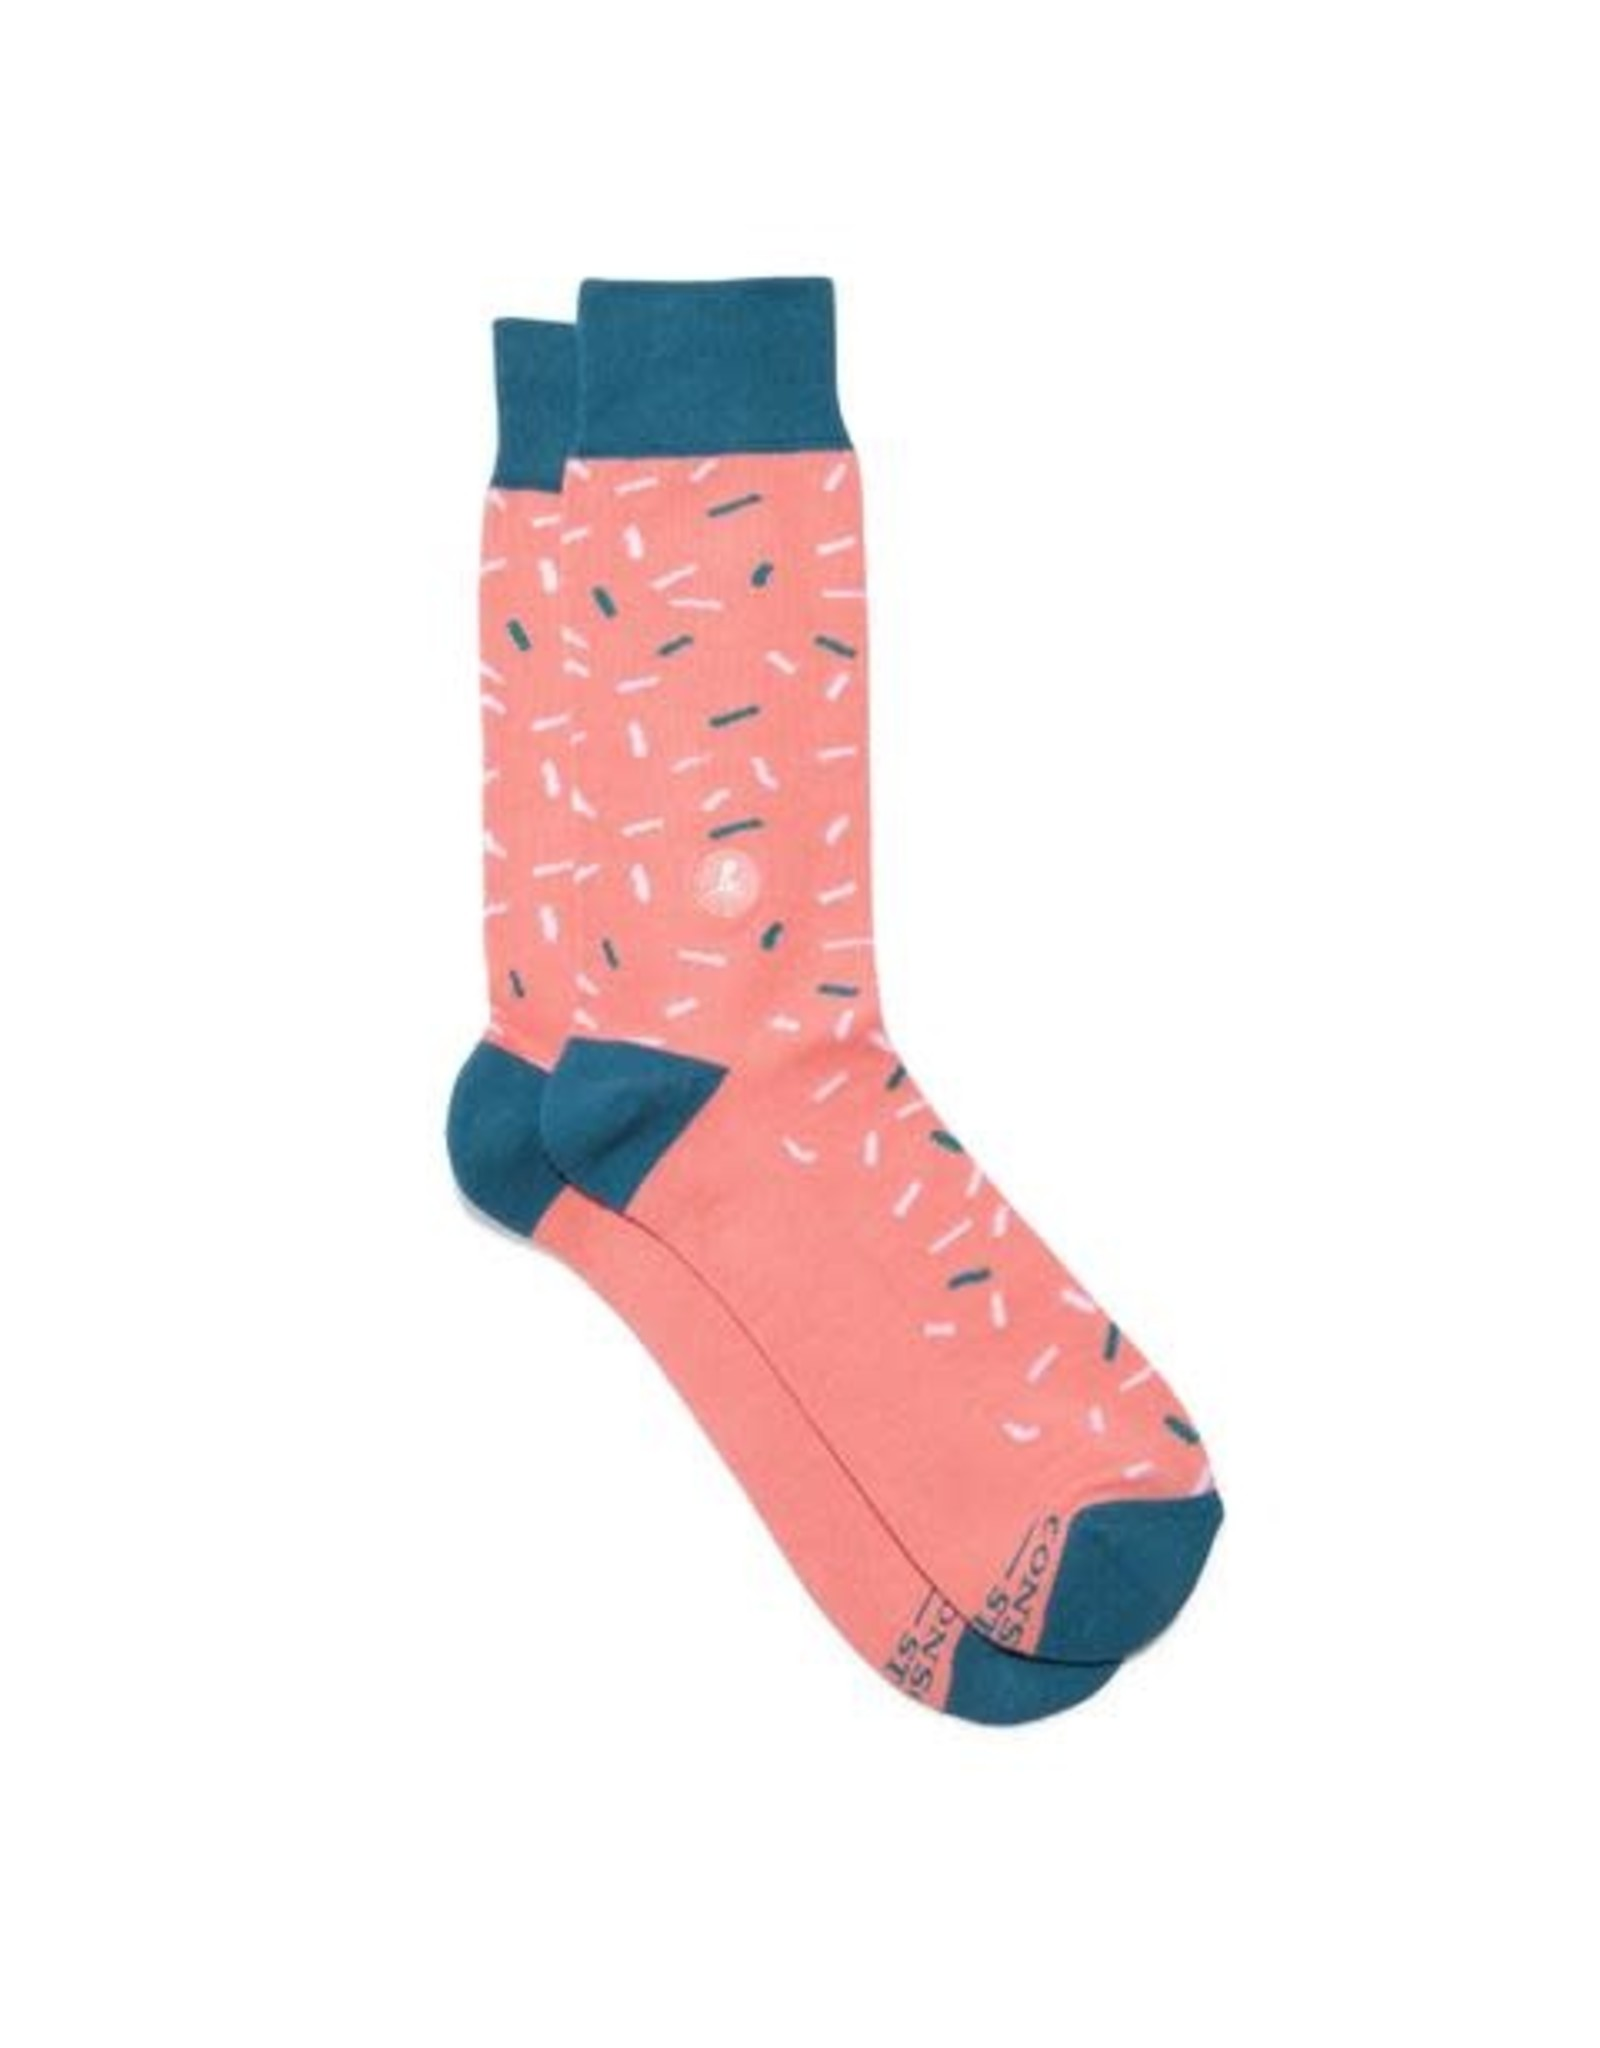 Socks that Find a Cure